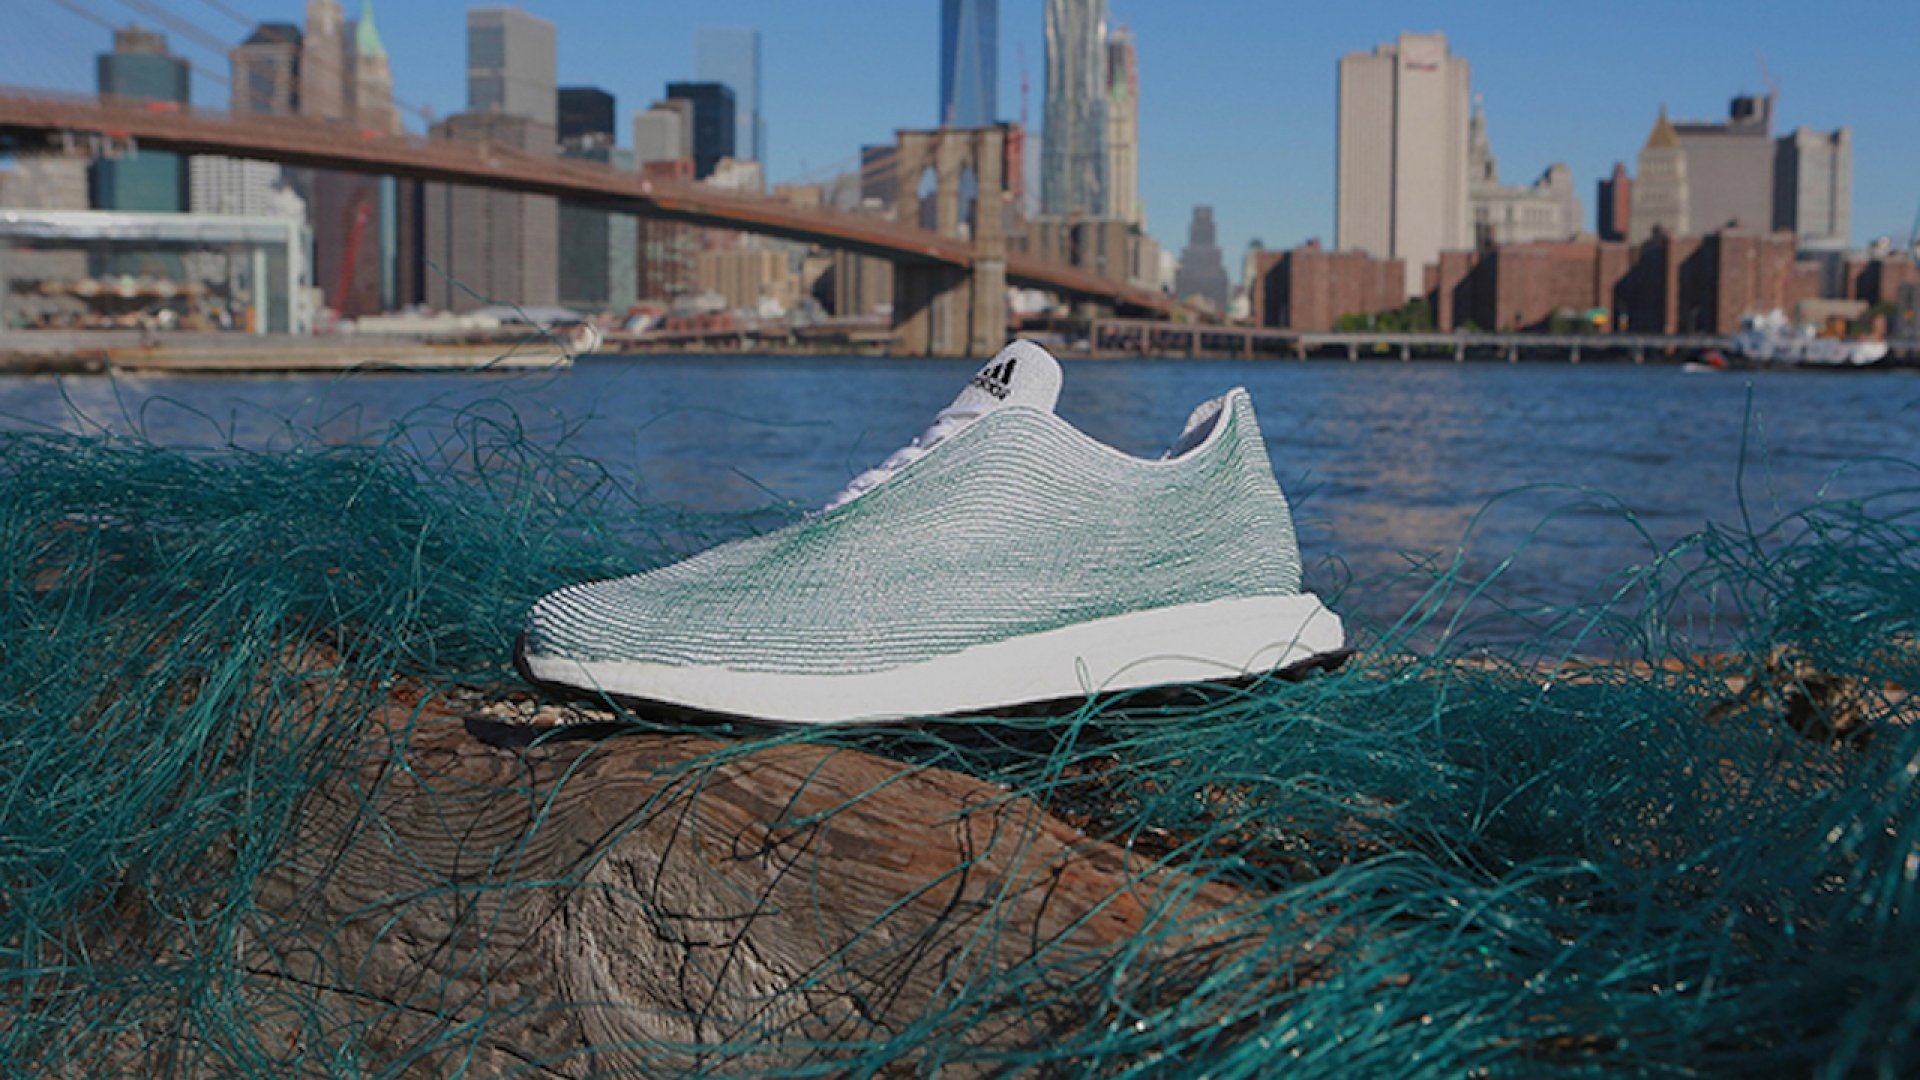 Why Adidas Partnered With This Nonprofit to Make a Shoe Out of Ocean Waste